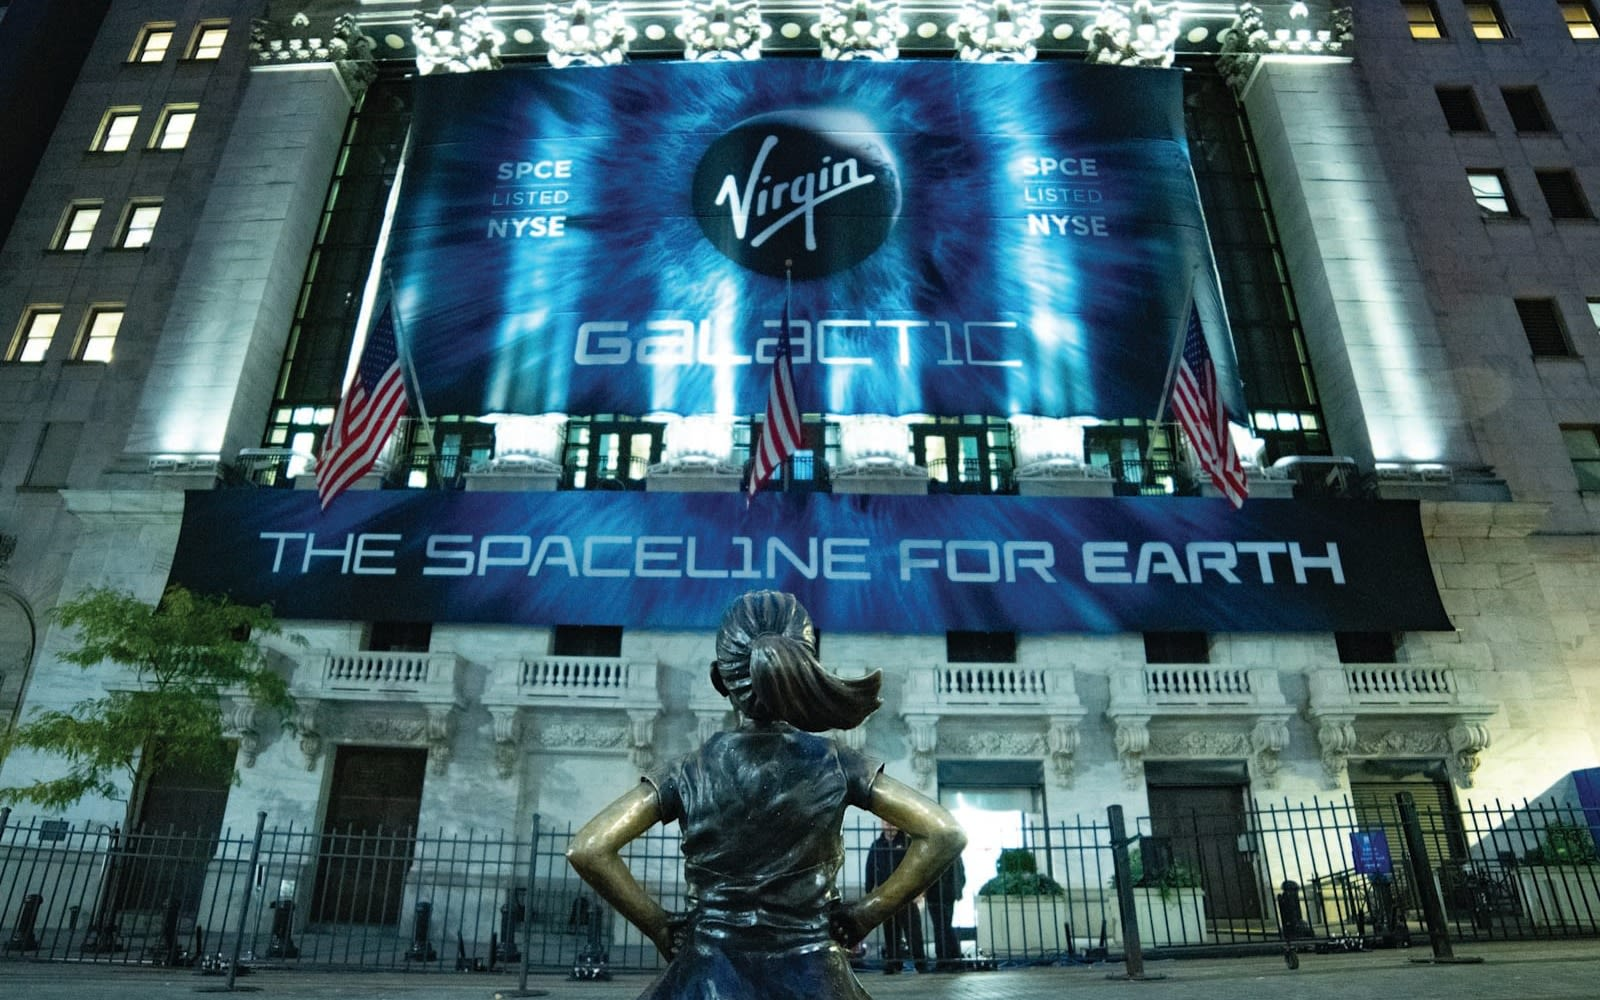 Virgin Galactic signs outside the New York Stock Exchange